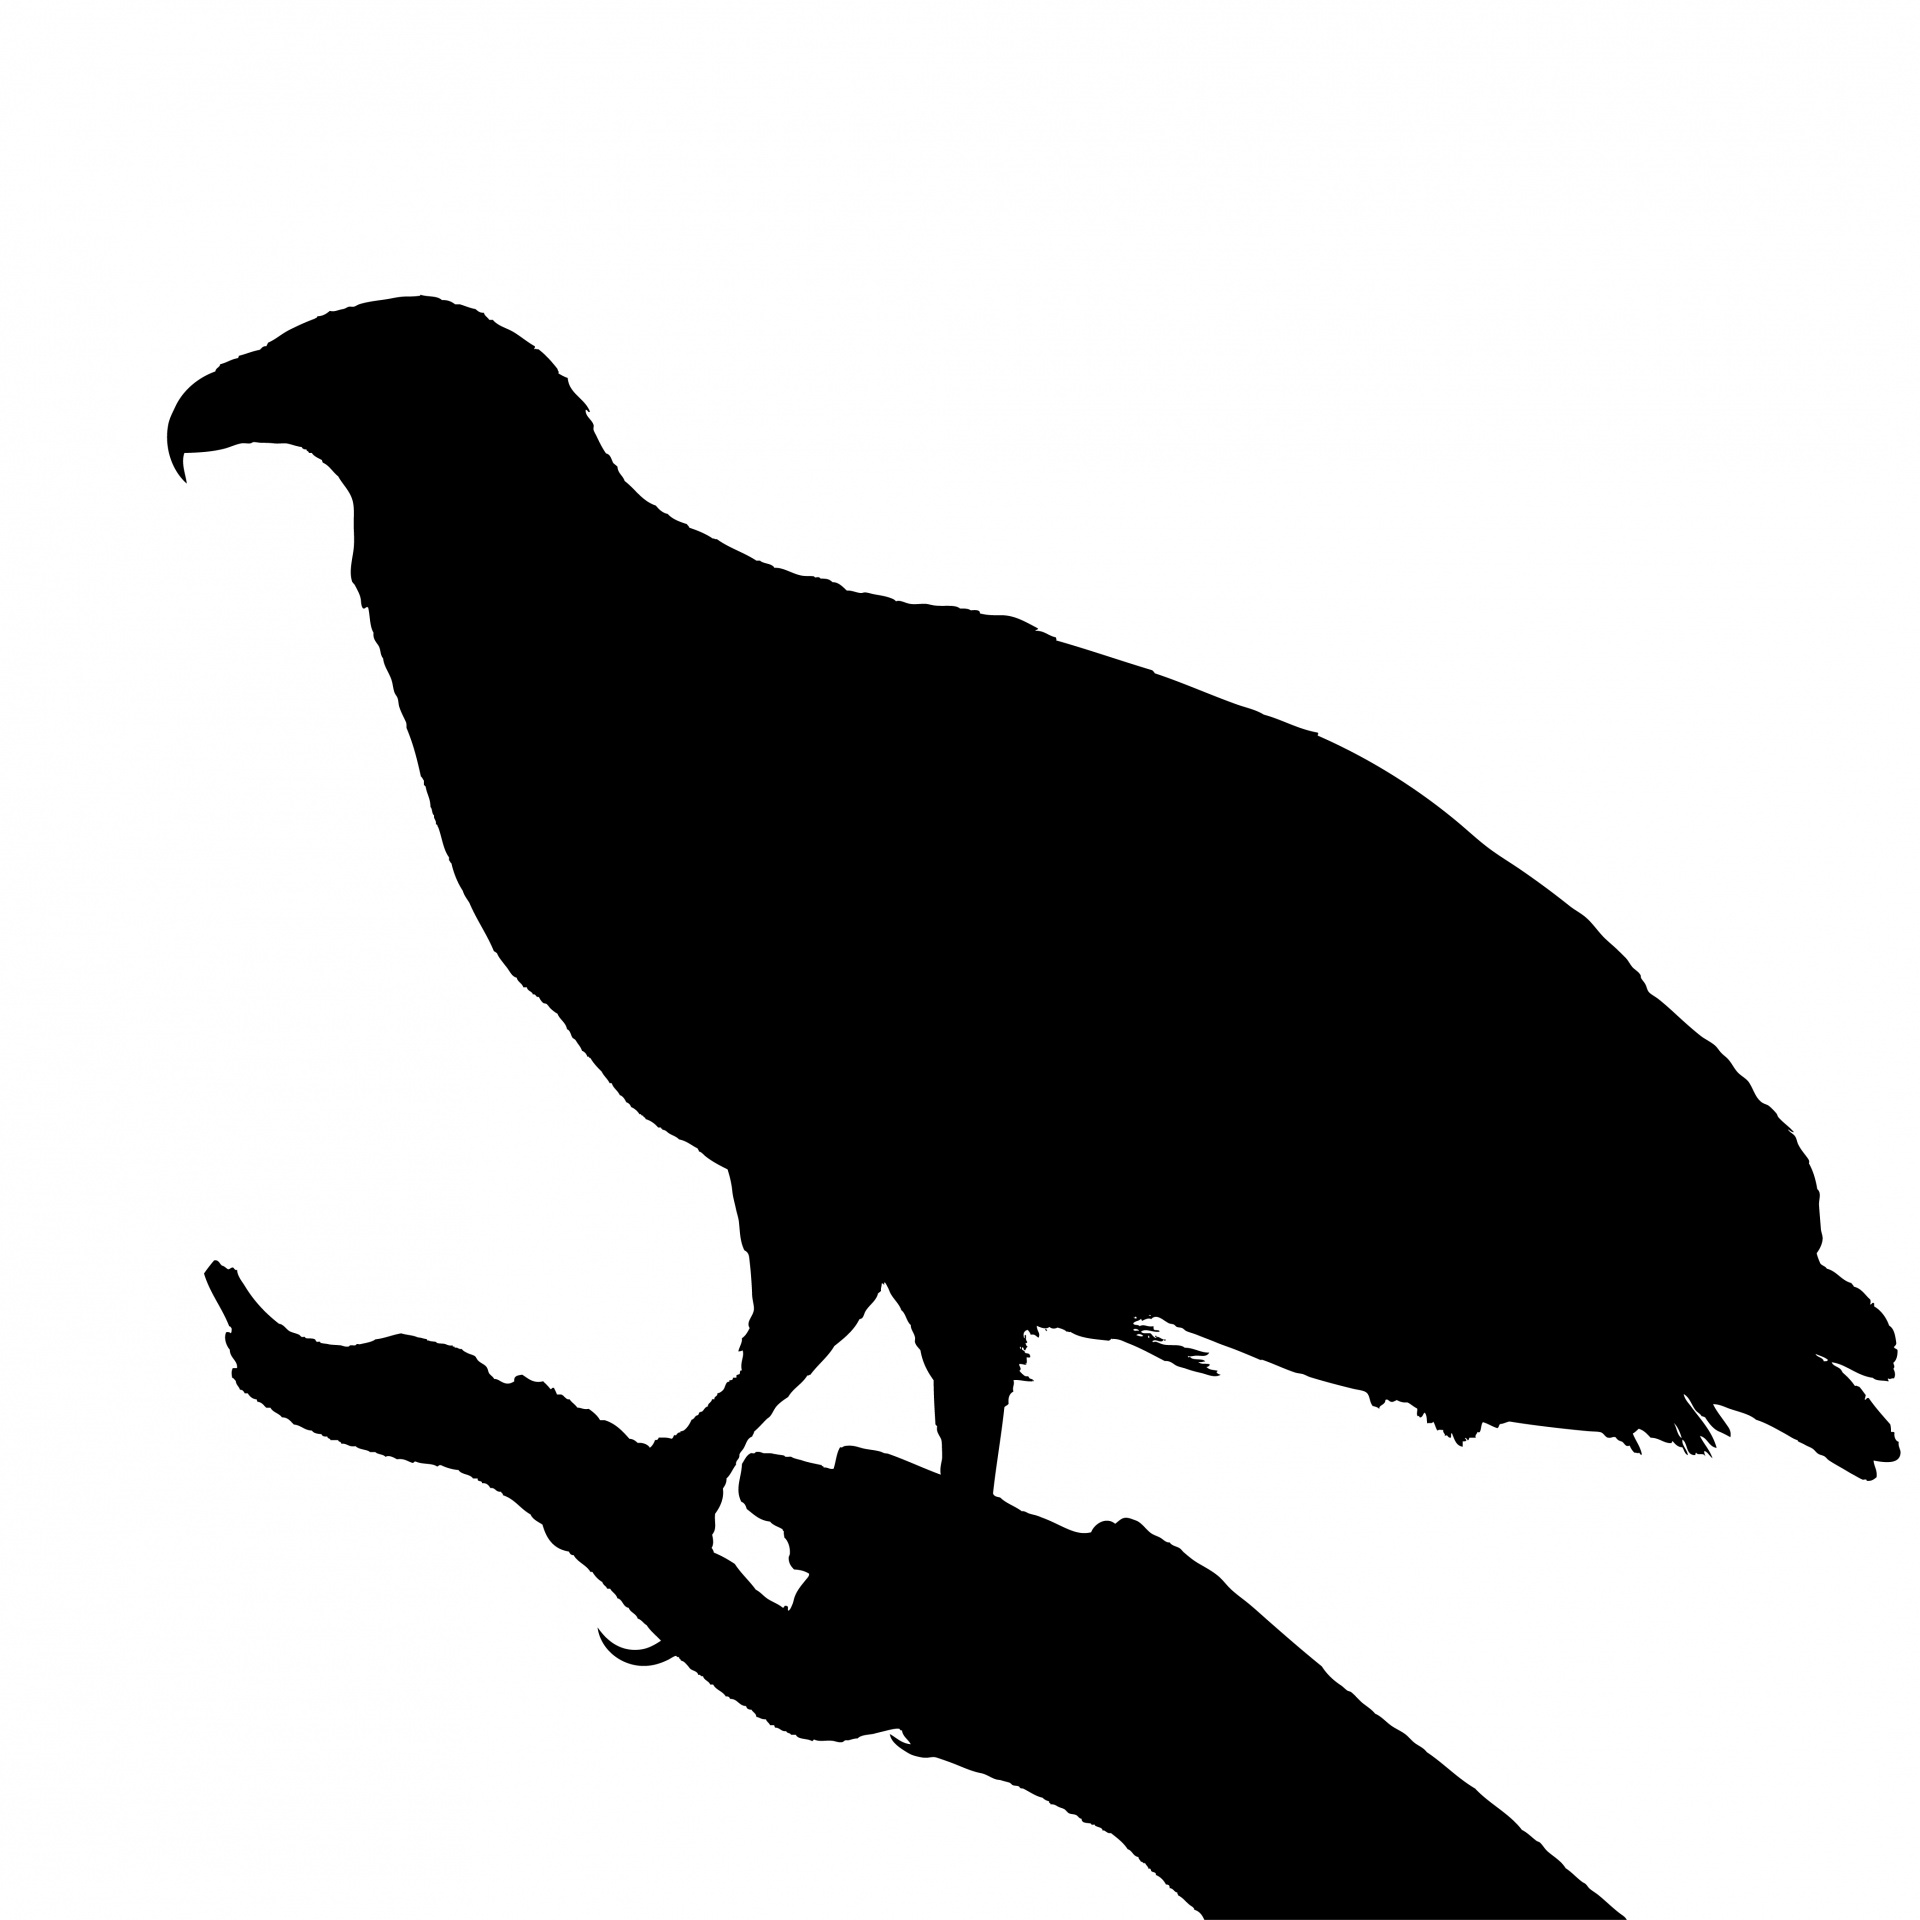 1920x1920 Bird On Branch Silhouette Free Stock Photo